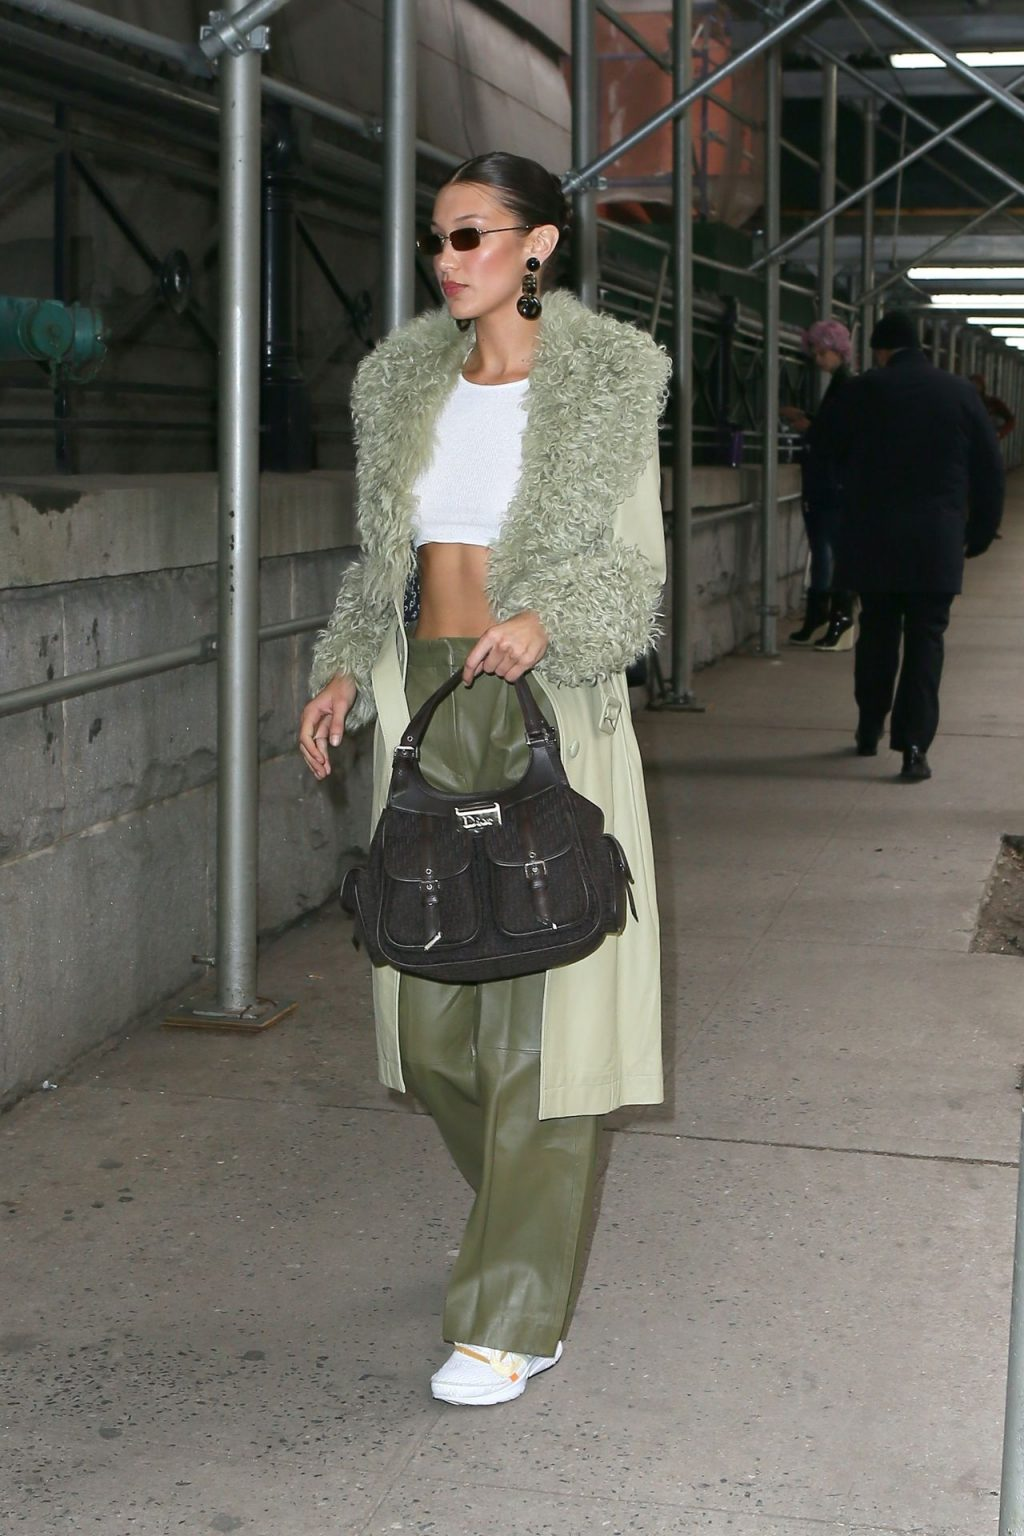 Bella Hadid See through The Fappening Blog 21 1024x1536 - Braless Bella Hadid Arrives at the Park Avenue Armory for the Marc Jacobs Fashion Show (59 Photos)